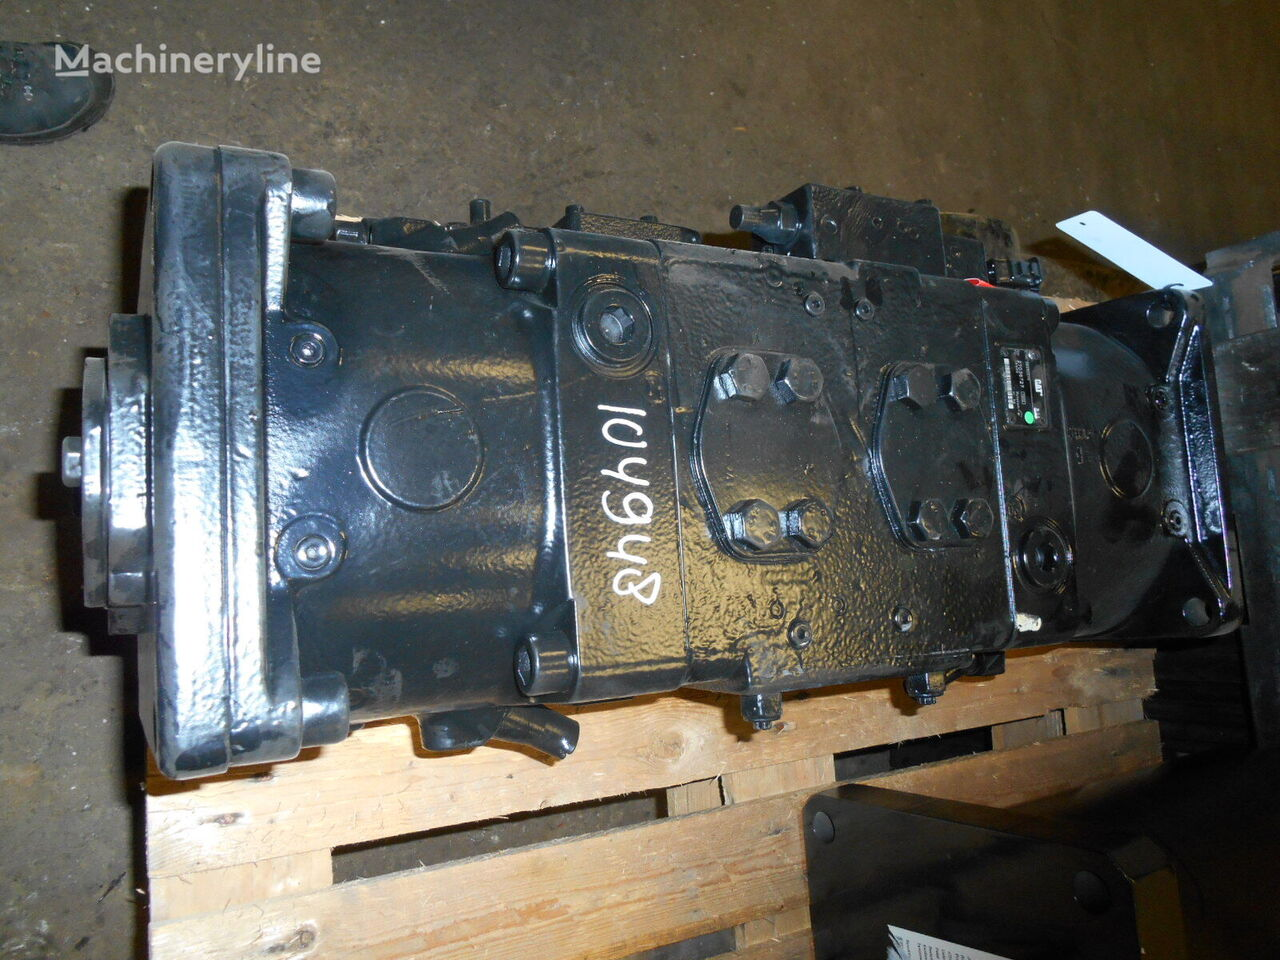 CATERPILLAR 3859001V hydraulic pump for excavator